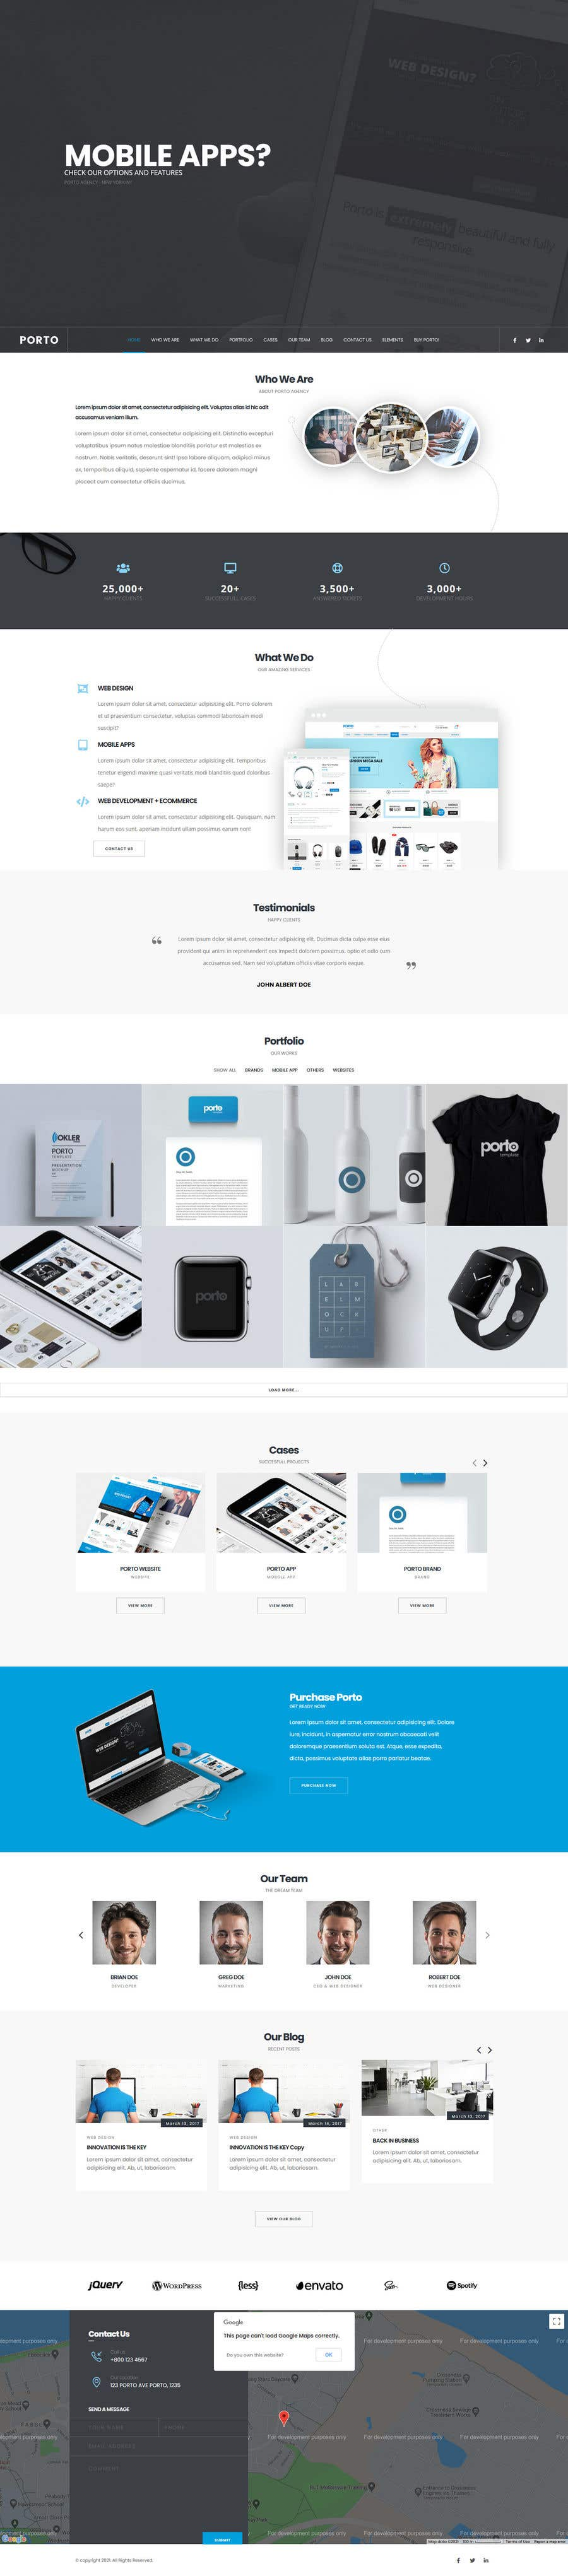 Bài tham dự cuộc thi #                                        38                                      cho                                         I need a Landing Page Website for Small Business Stores